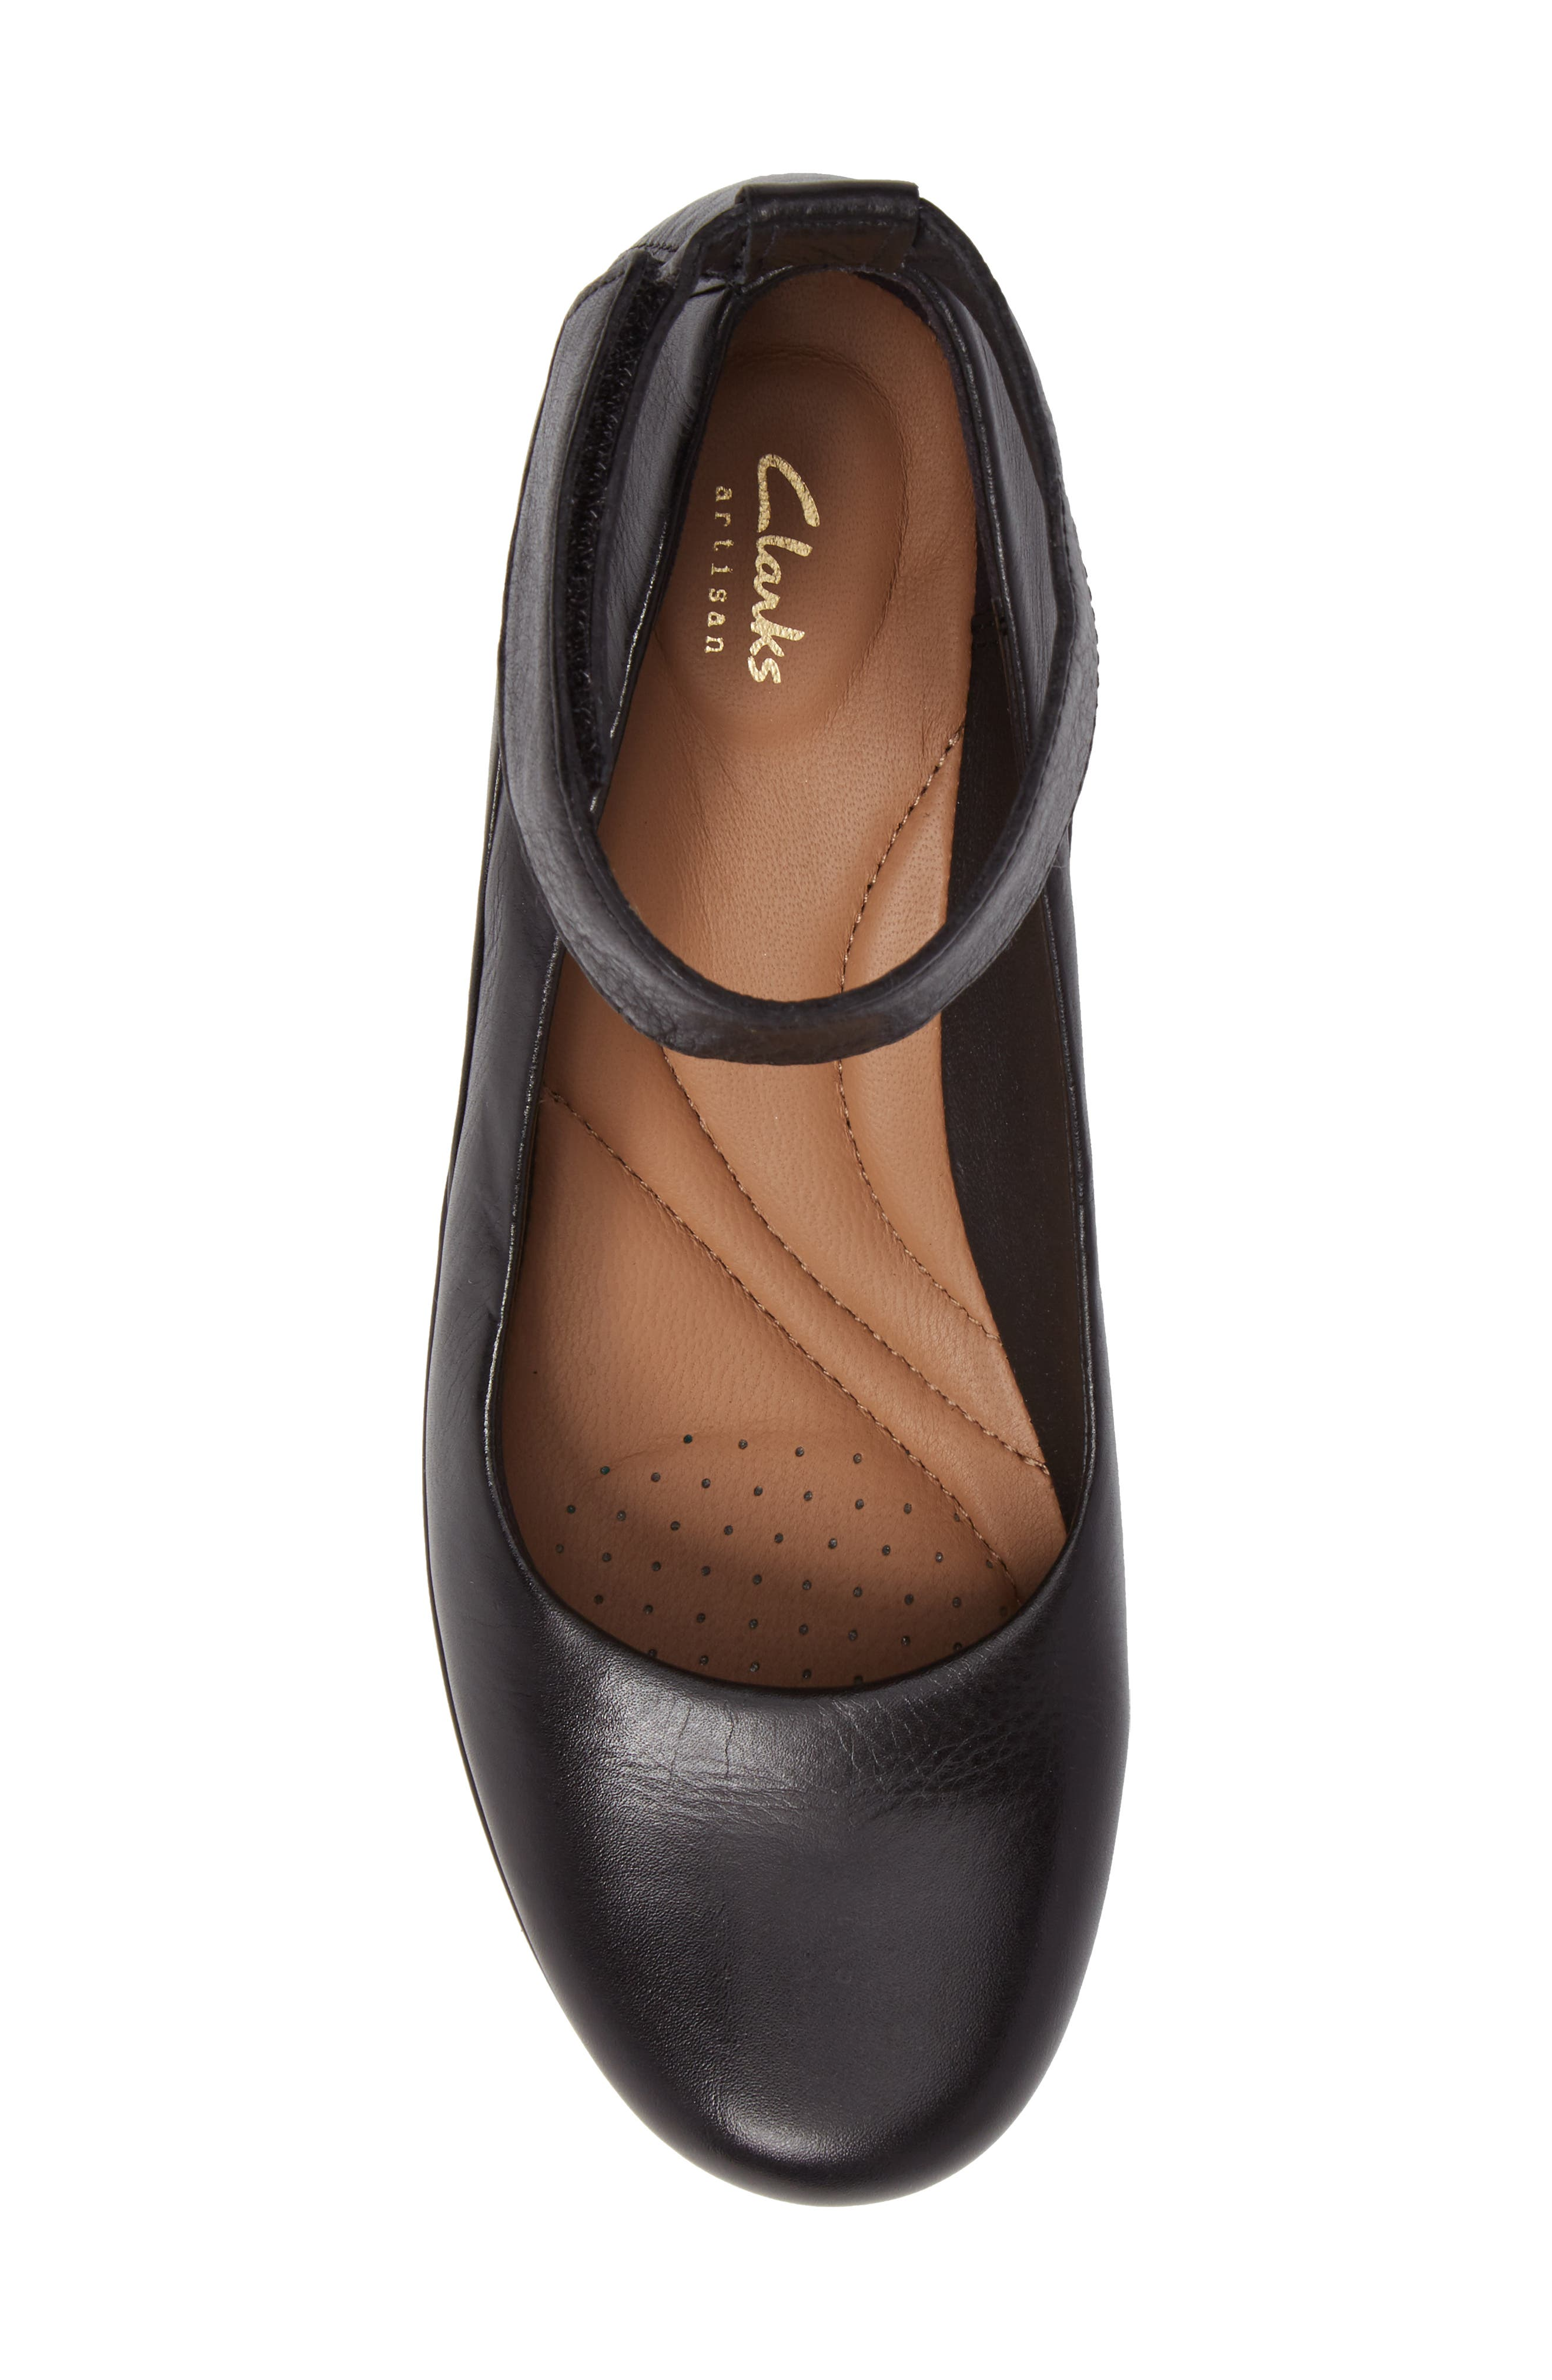 Wynnmere Fox Ankle Strap Pump,                             Alternate thumbnail 5, color,                             BLACK LEATHER